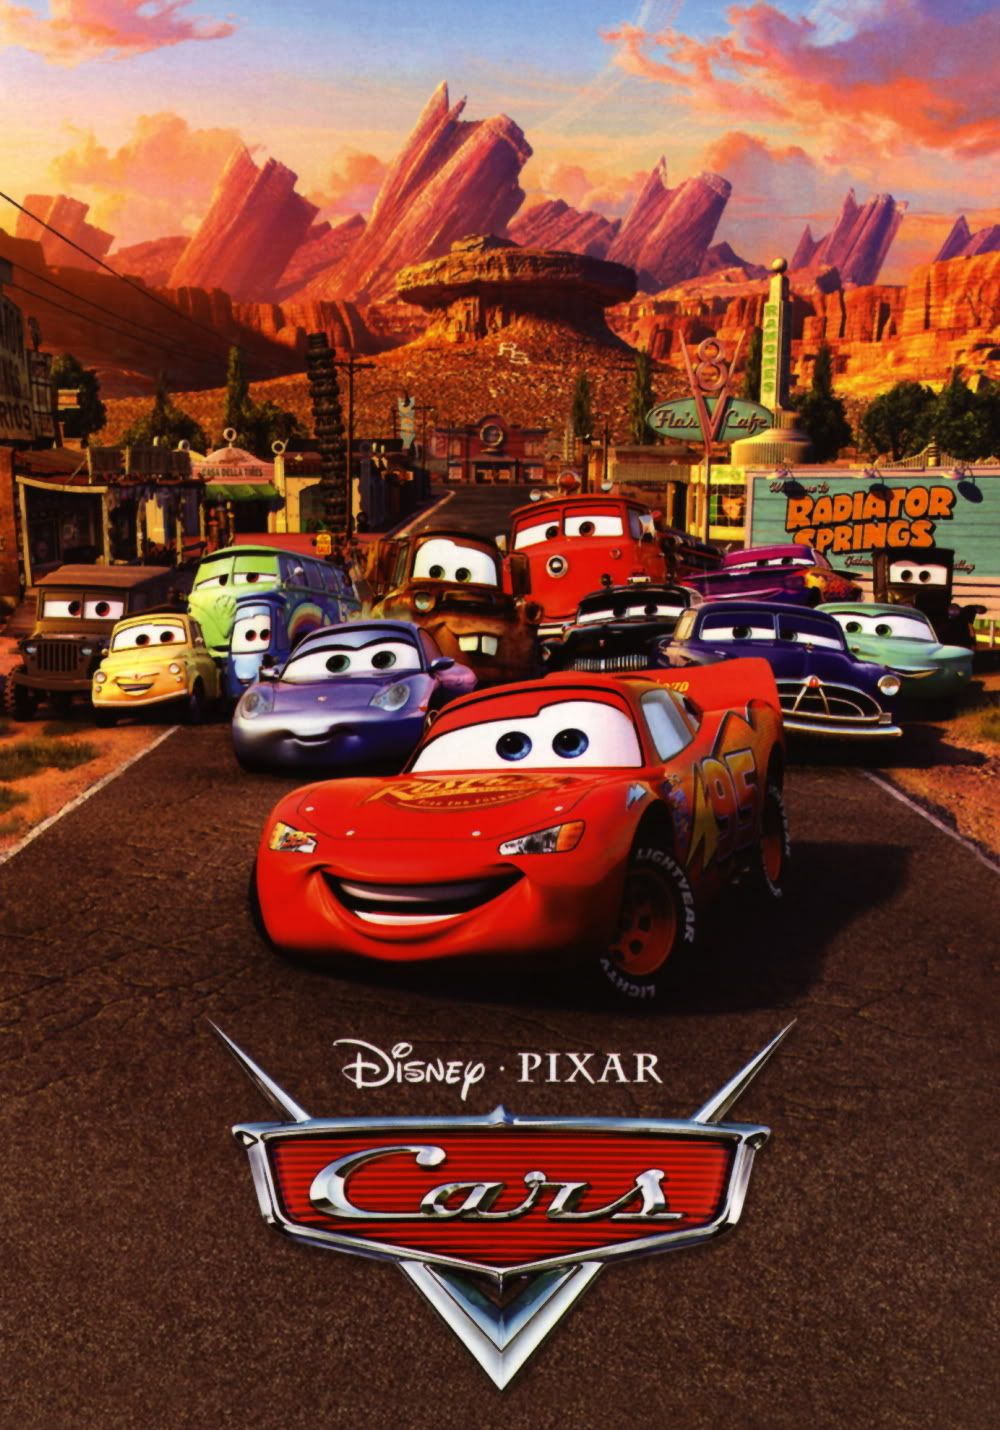 Cellphone Background Wallpaper With Images Disney Cars